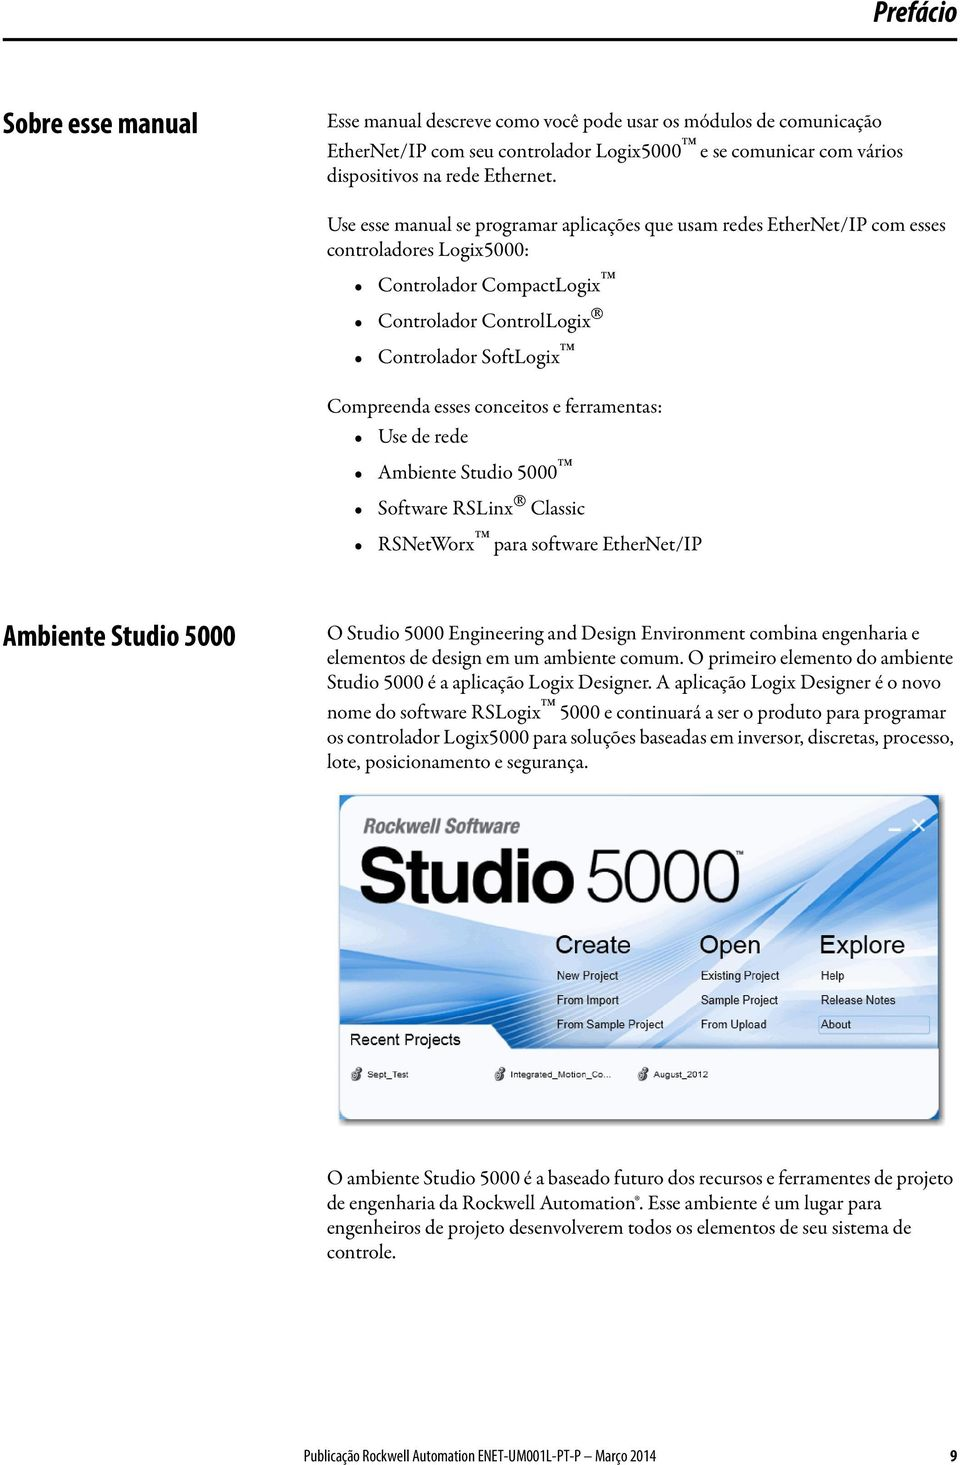 conceitos e ferramentas: Use de rede Ambiente Studio 5000 Software RSLinx Classic RSNetWorx para software EtherNet/IP Ambiente Studio 5000 O Studio 5000 Engineering and Design Environment combina